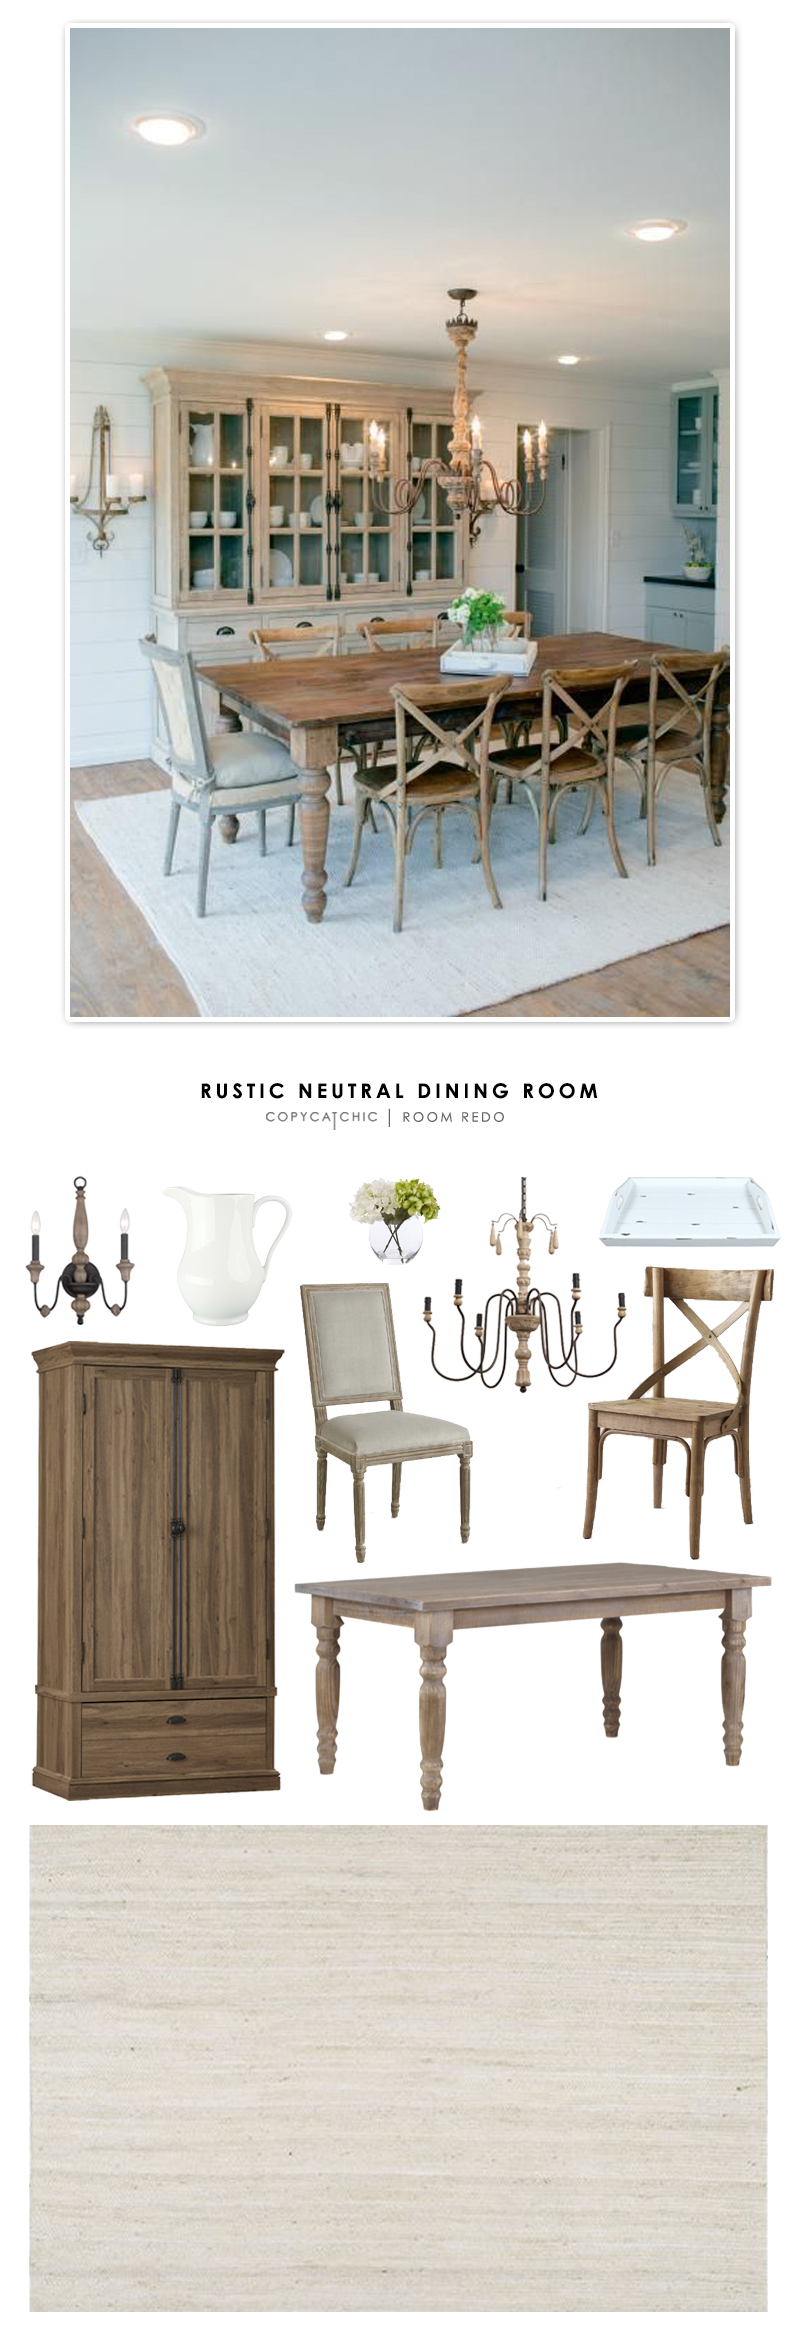 Copy Cat Chic Room Redo | Rustic Neutral Dining Room - copycatchic